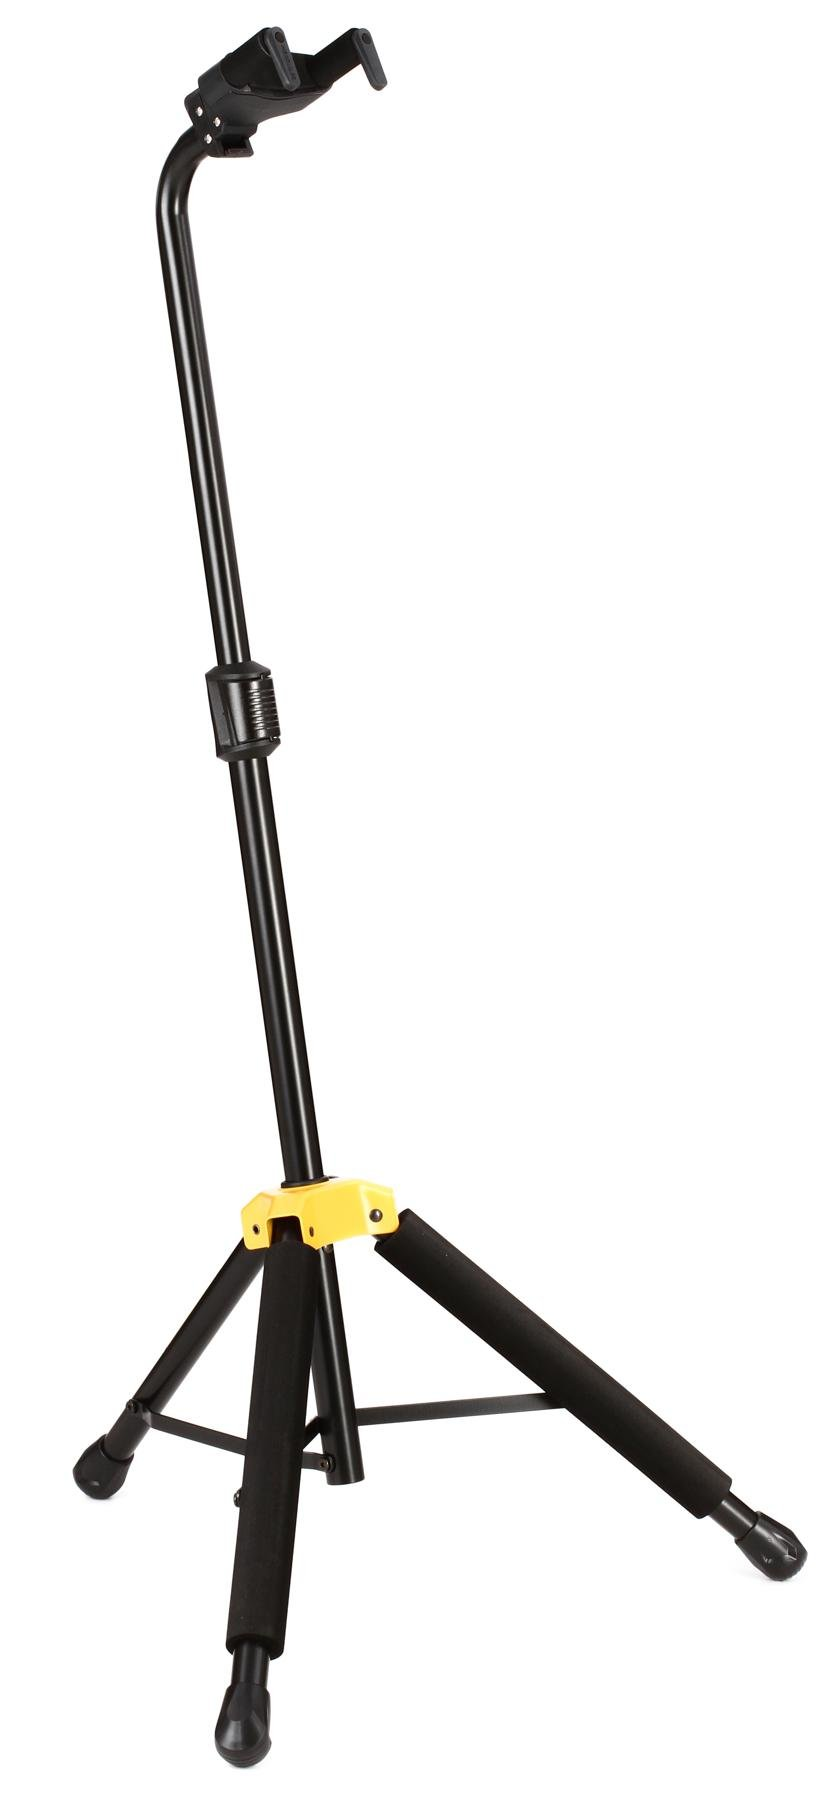 Hercules Stands GS414B Hanging Guitar Stand - Auto Grip Stand